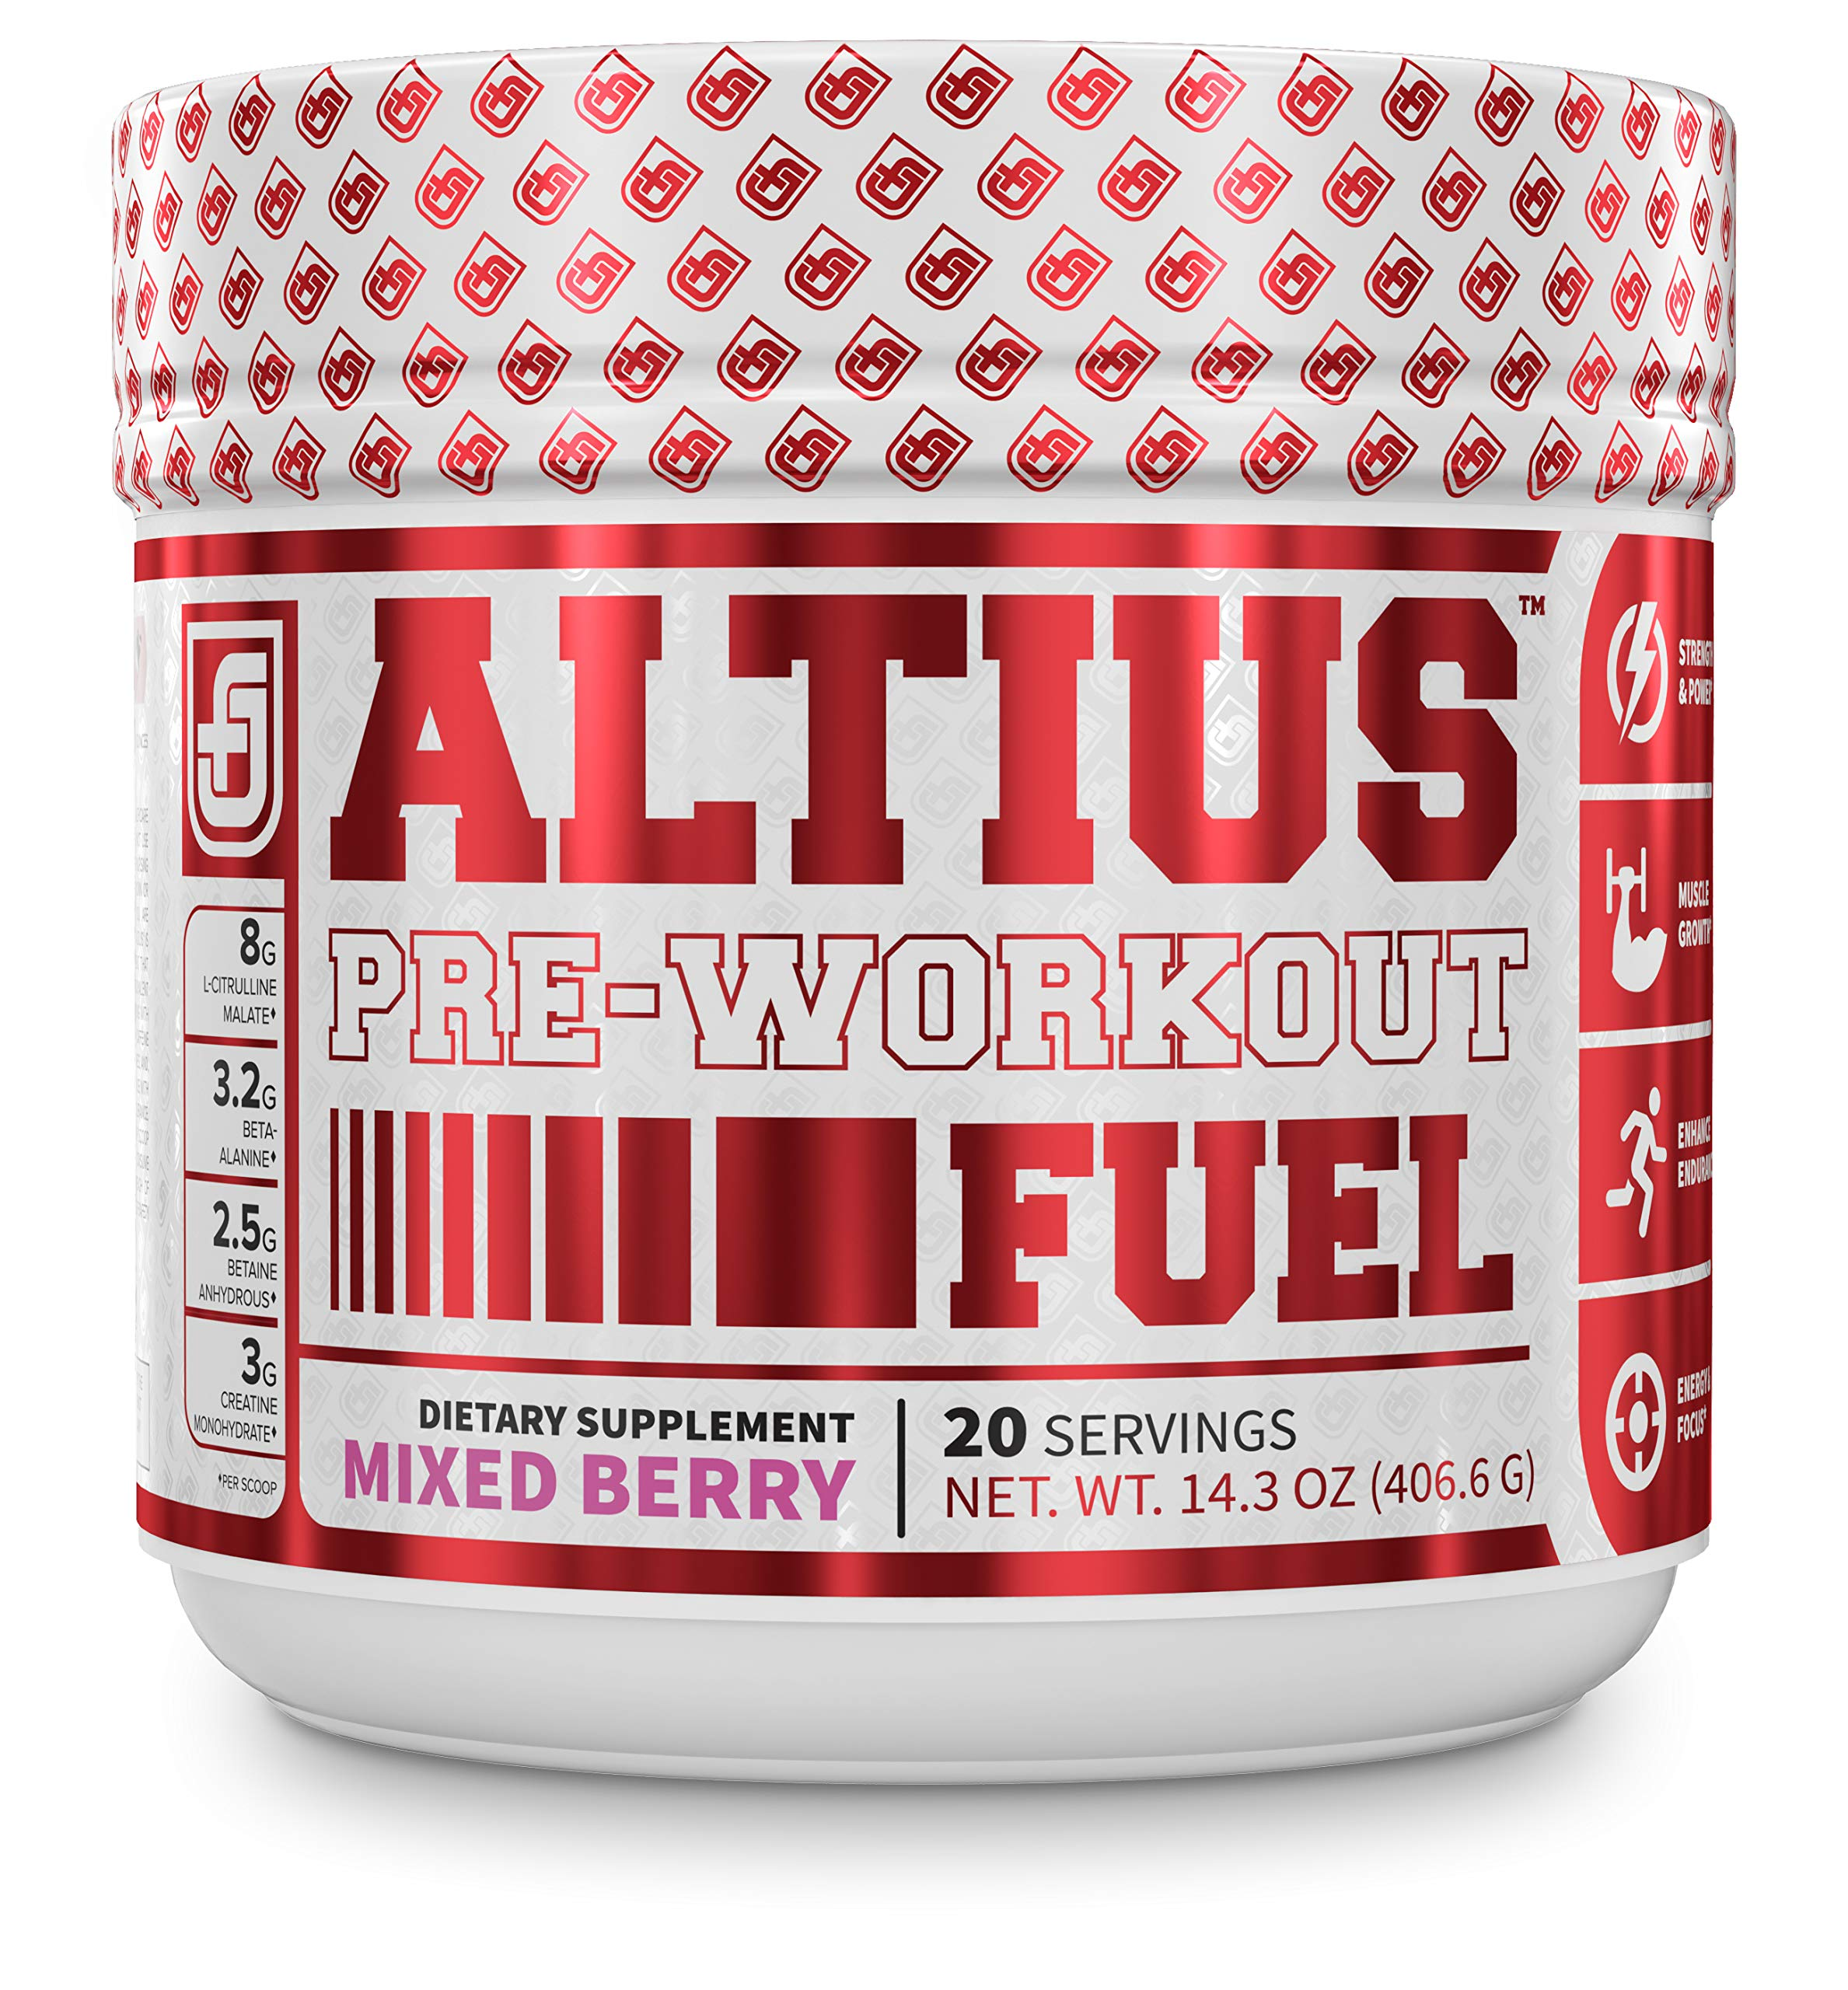 ALTIUS Pre-Workout Supplement - Naturally Sweetened - Clinically Dosed Powerhouse Formulation - Increase Energy & Focus, Enhance Endurance - Boost Strength, Pumps, & Performance - Mixed Berry Blast (14.3 OZ) by Jacked Factory